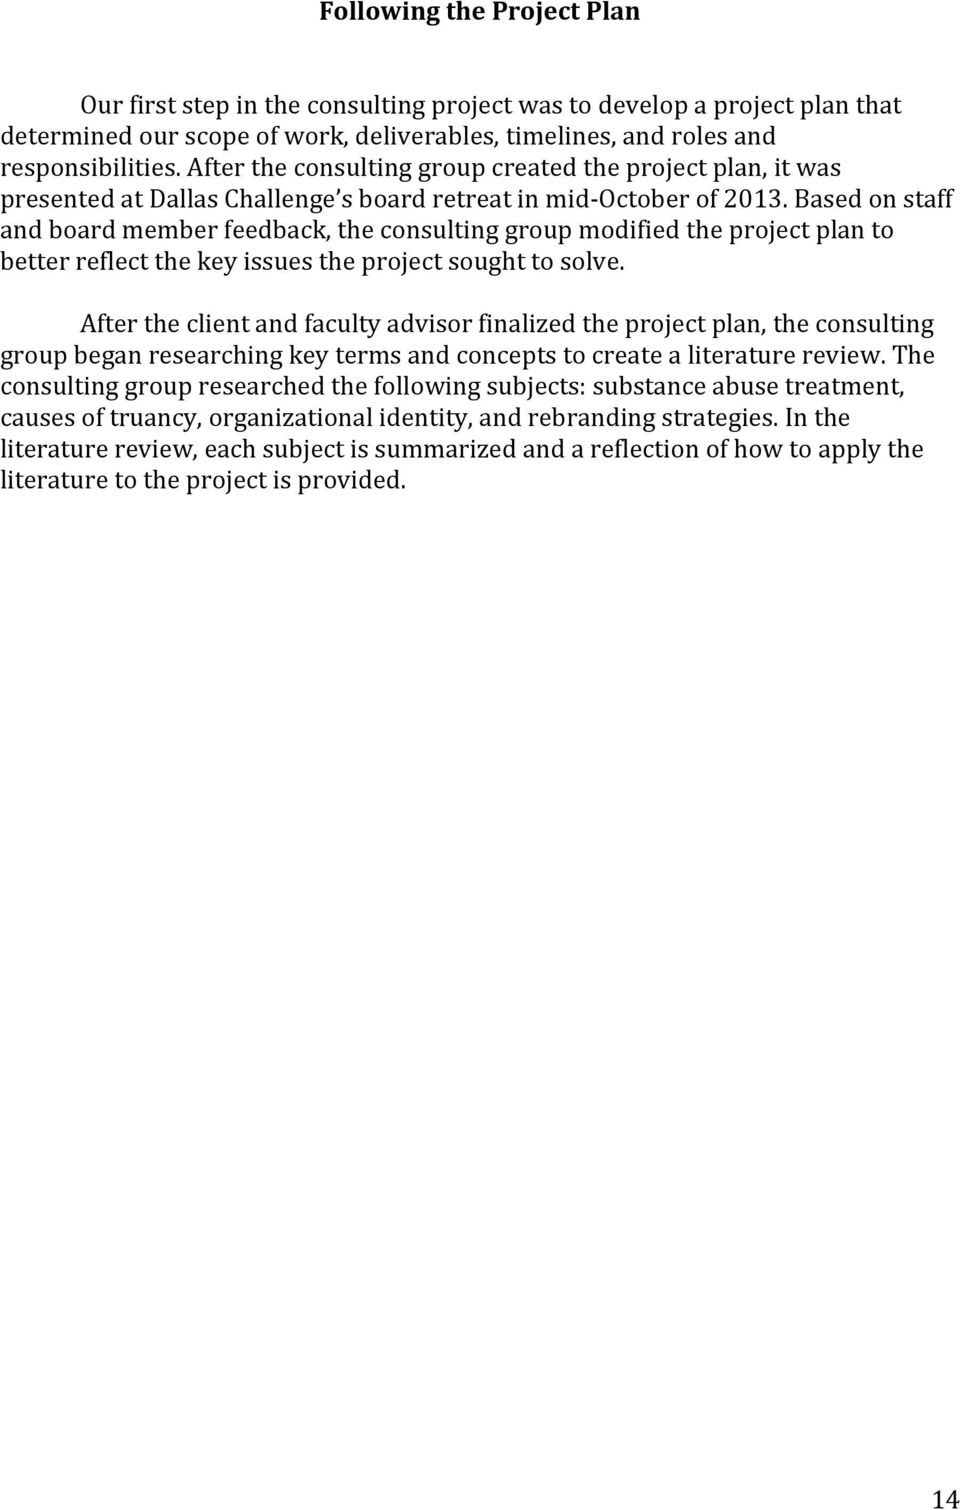 Based on staff and board member feedback, the consulting group modified the project plan to better reflect the key issues the project sought to solve.